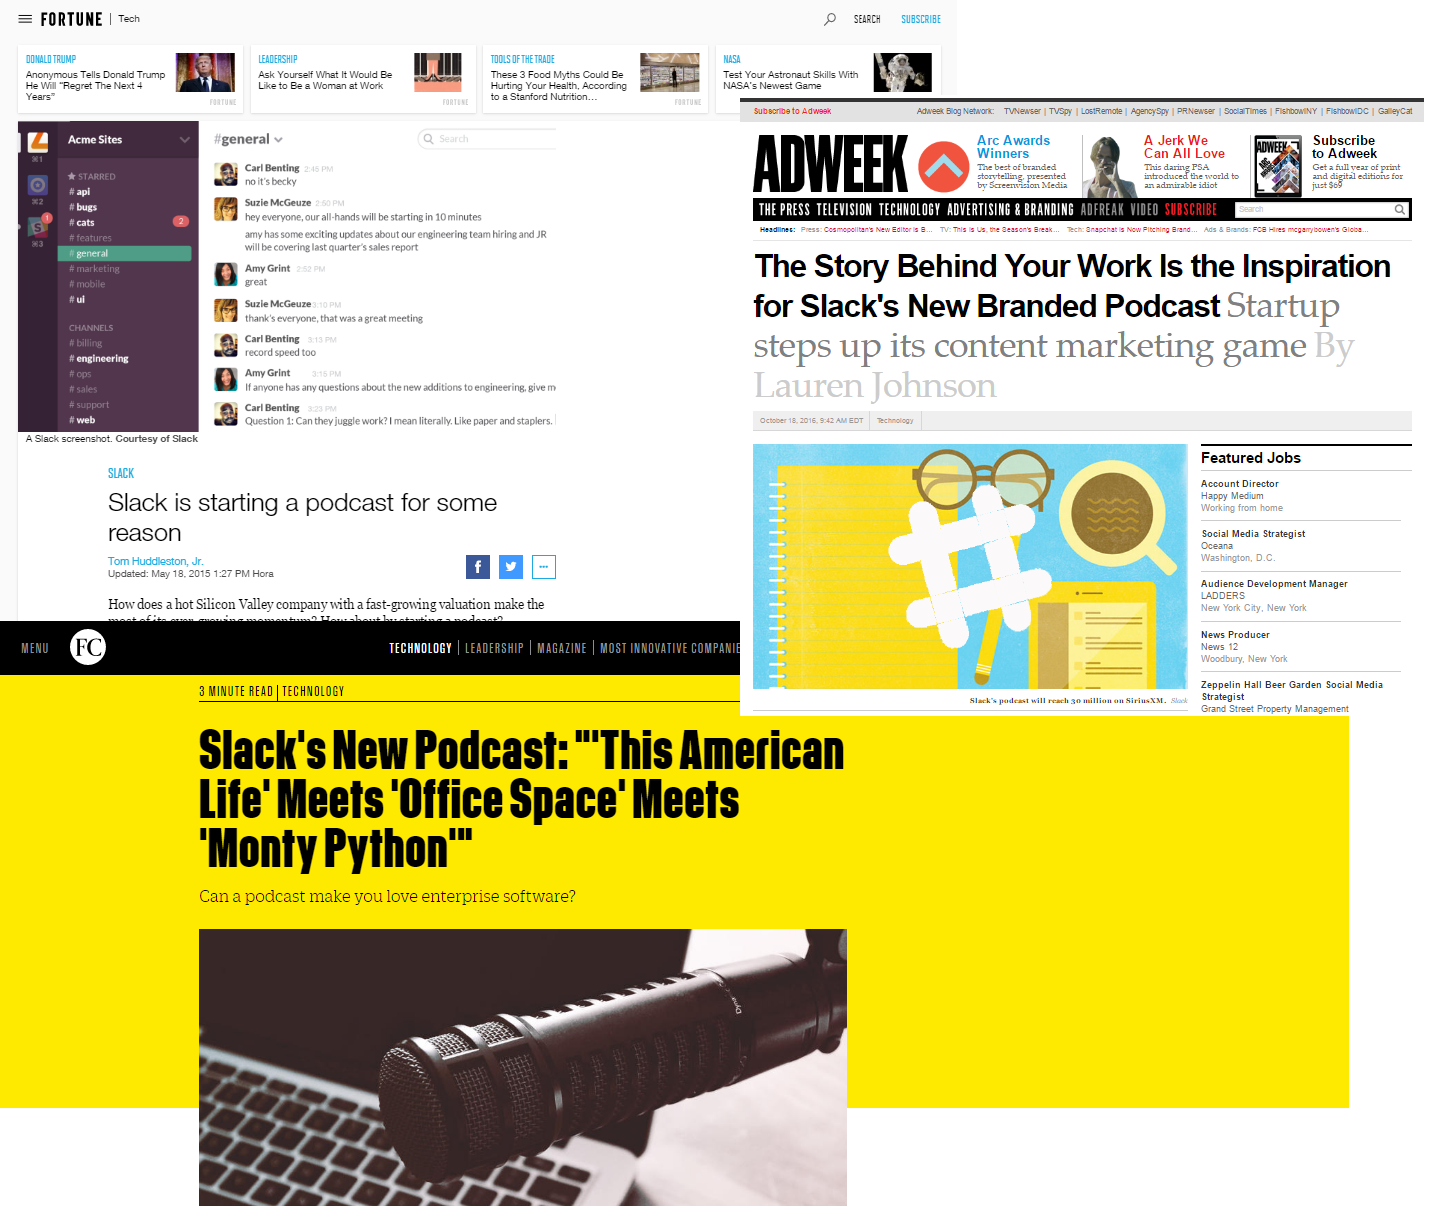 Podcast: one of the leading content marketing tactics Slack